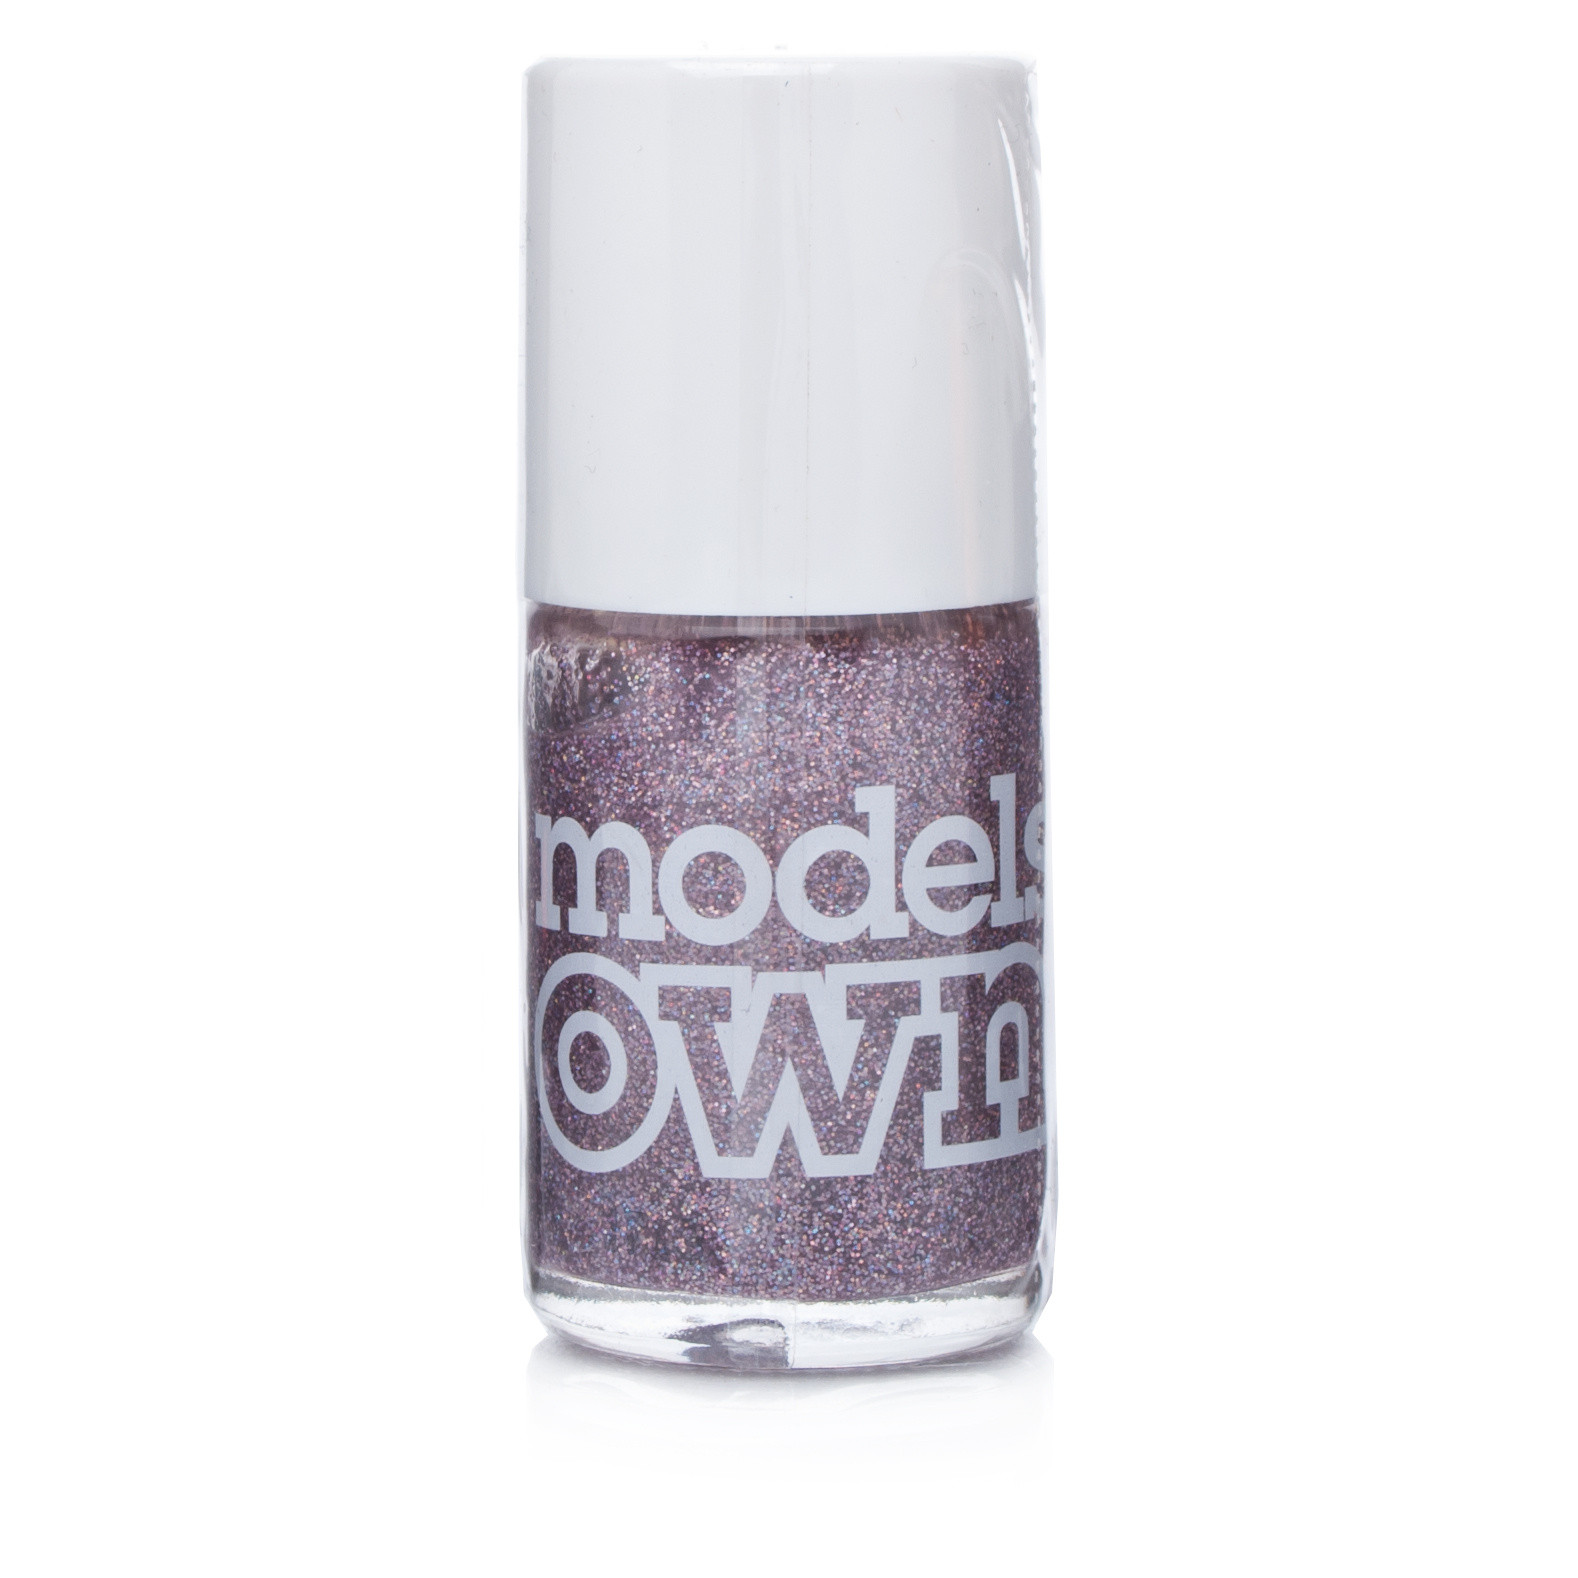 Models Own Wonderland Northern Lights Nail Polish